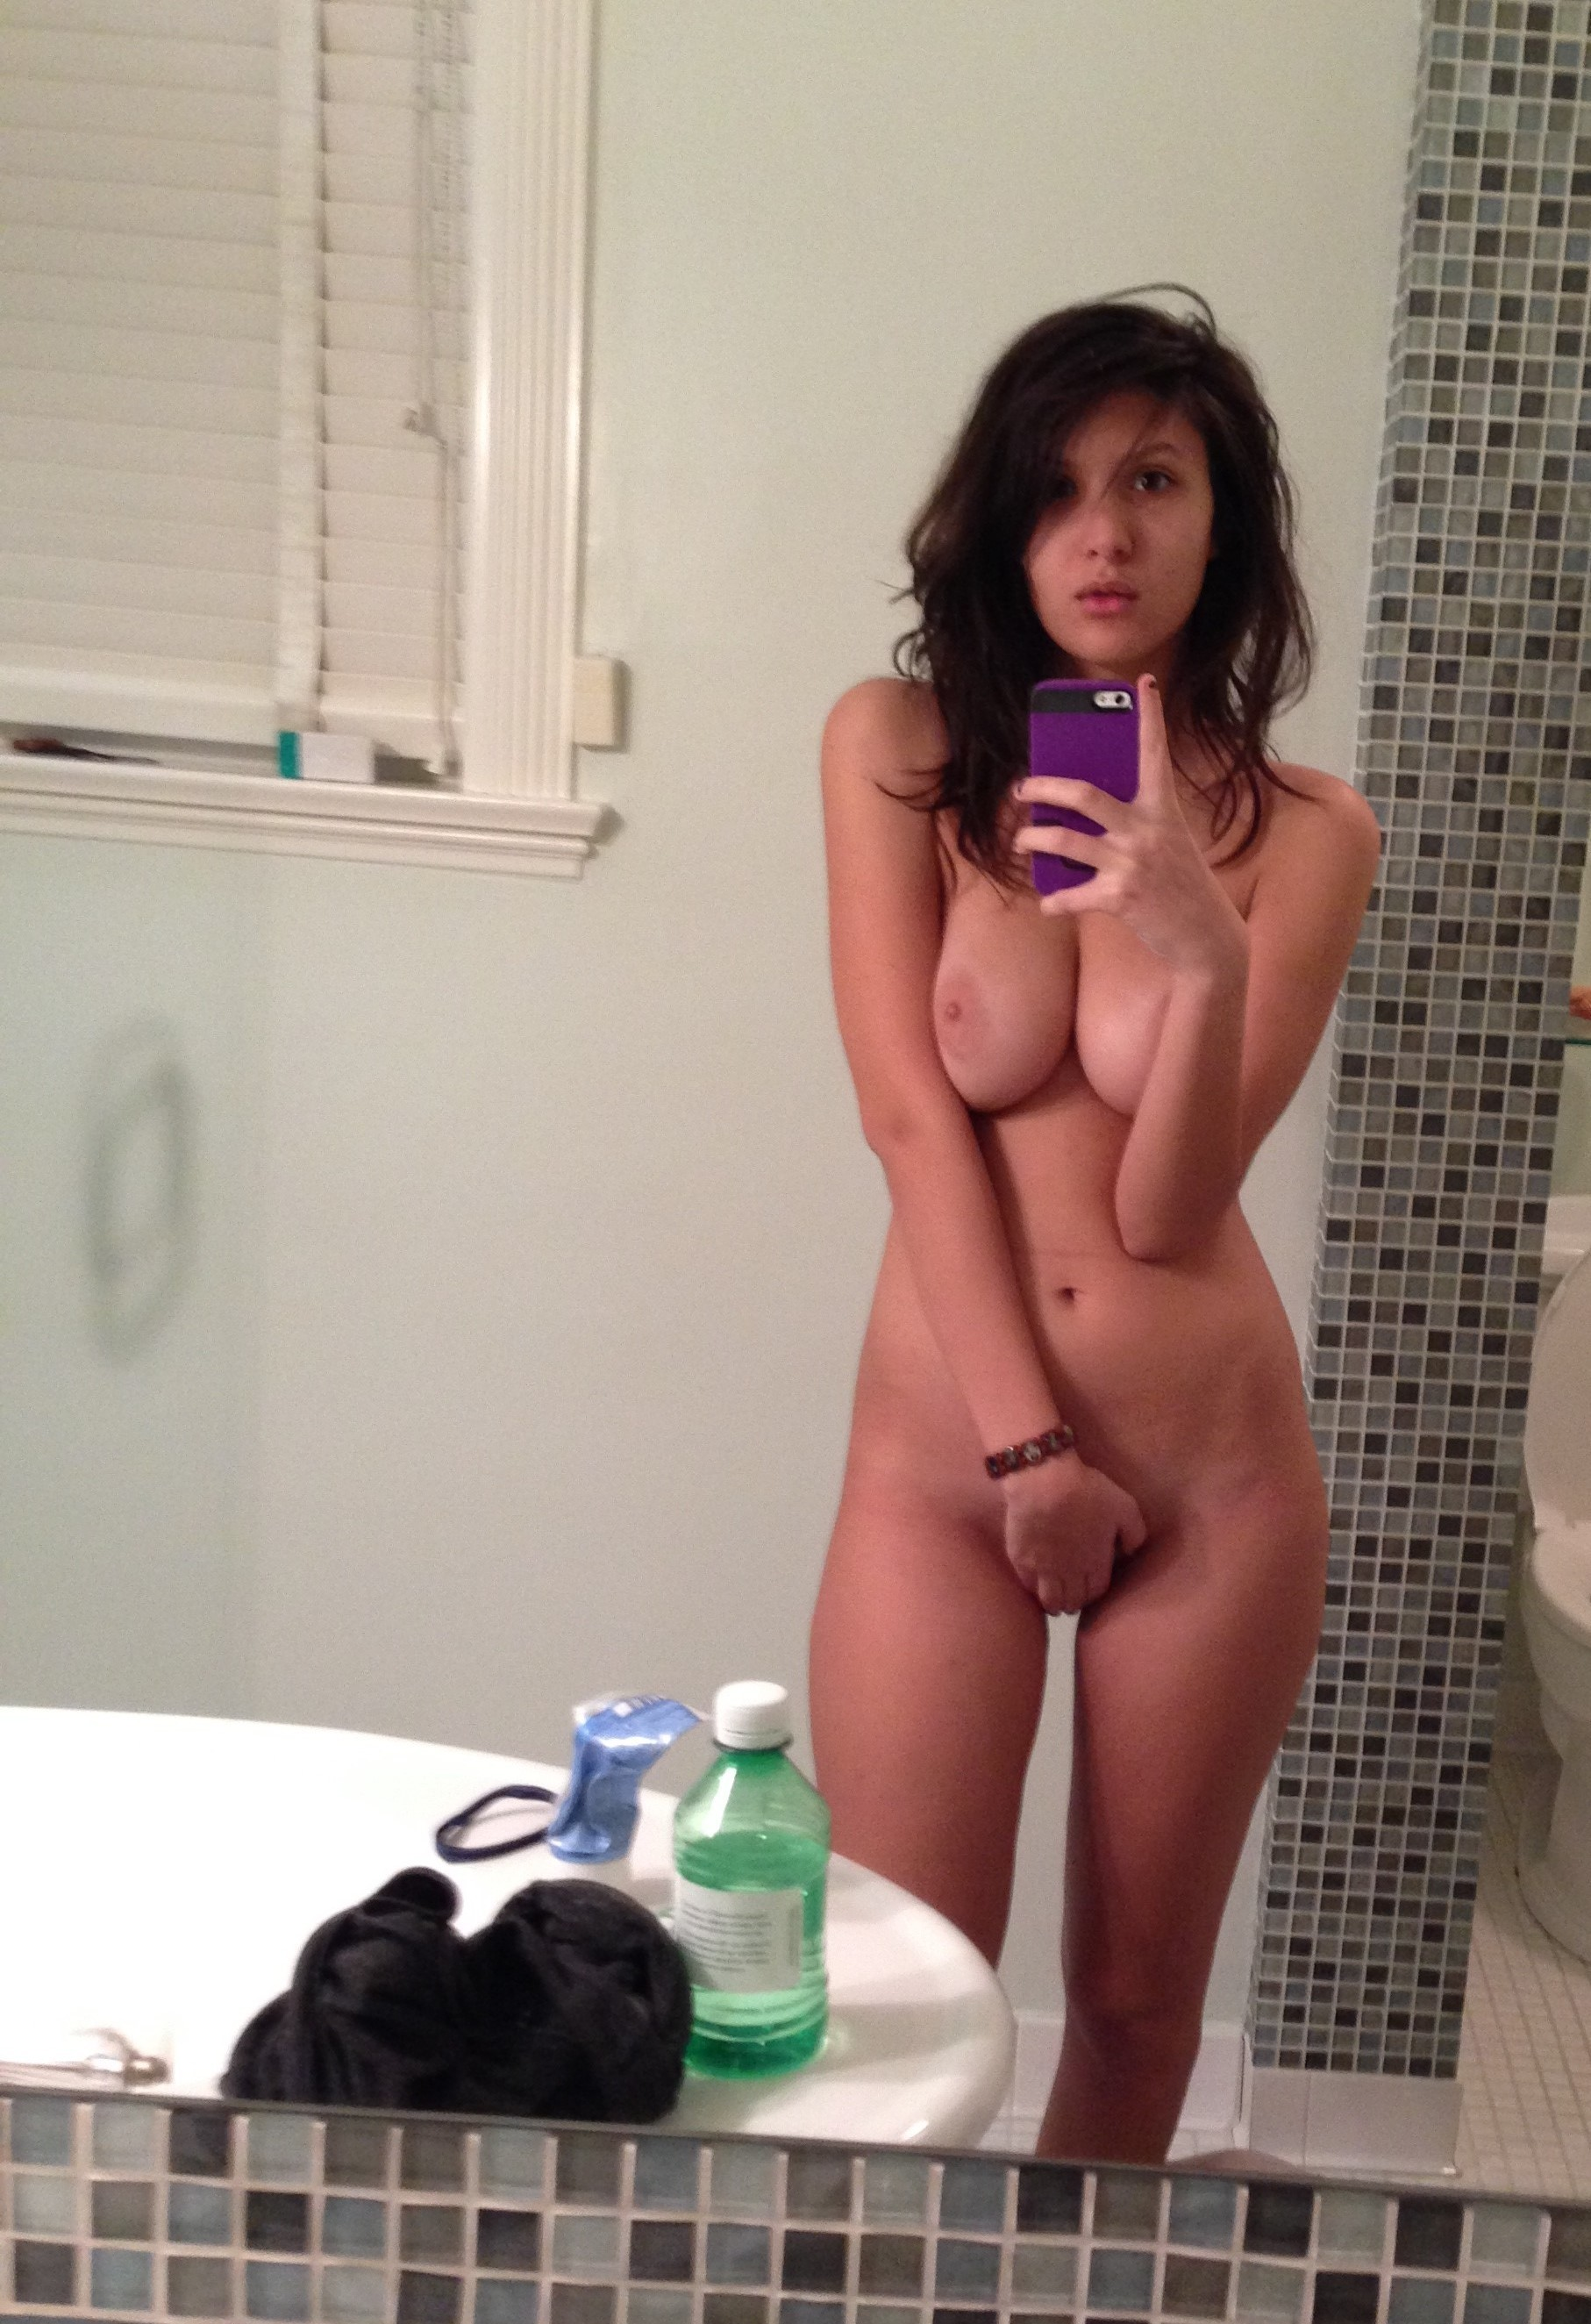 nude-selfie-mirror-girls-selfshot-young-mix-vol6-87